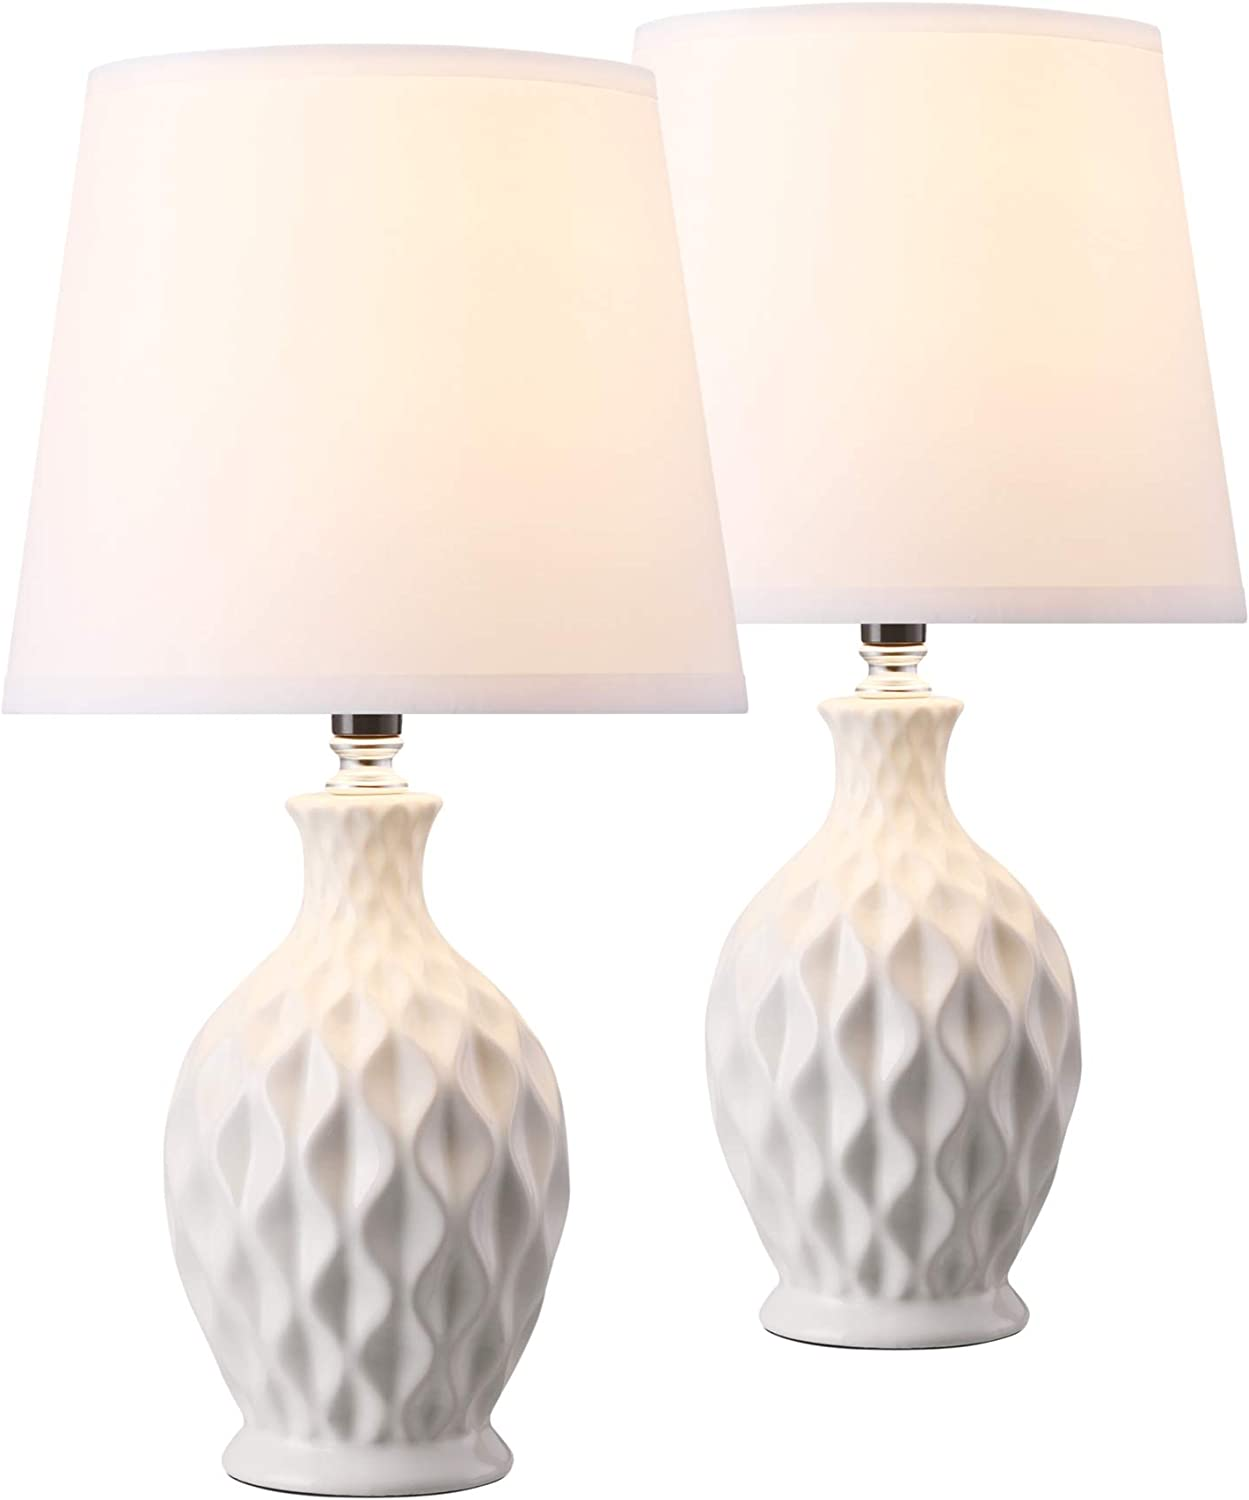 Co-Z Modern Ceramic Table Lamps Satz von 2, White Table Lamp für Bedside Nightstand Bedroom, Cute Desk Lamp mit White Fabric Shade 15'' bei Height.